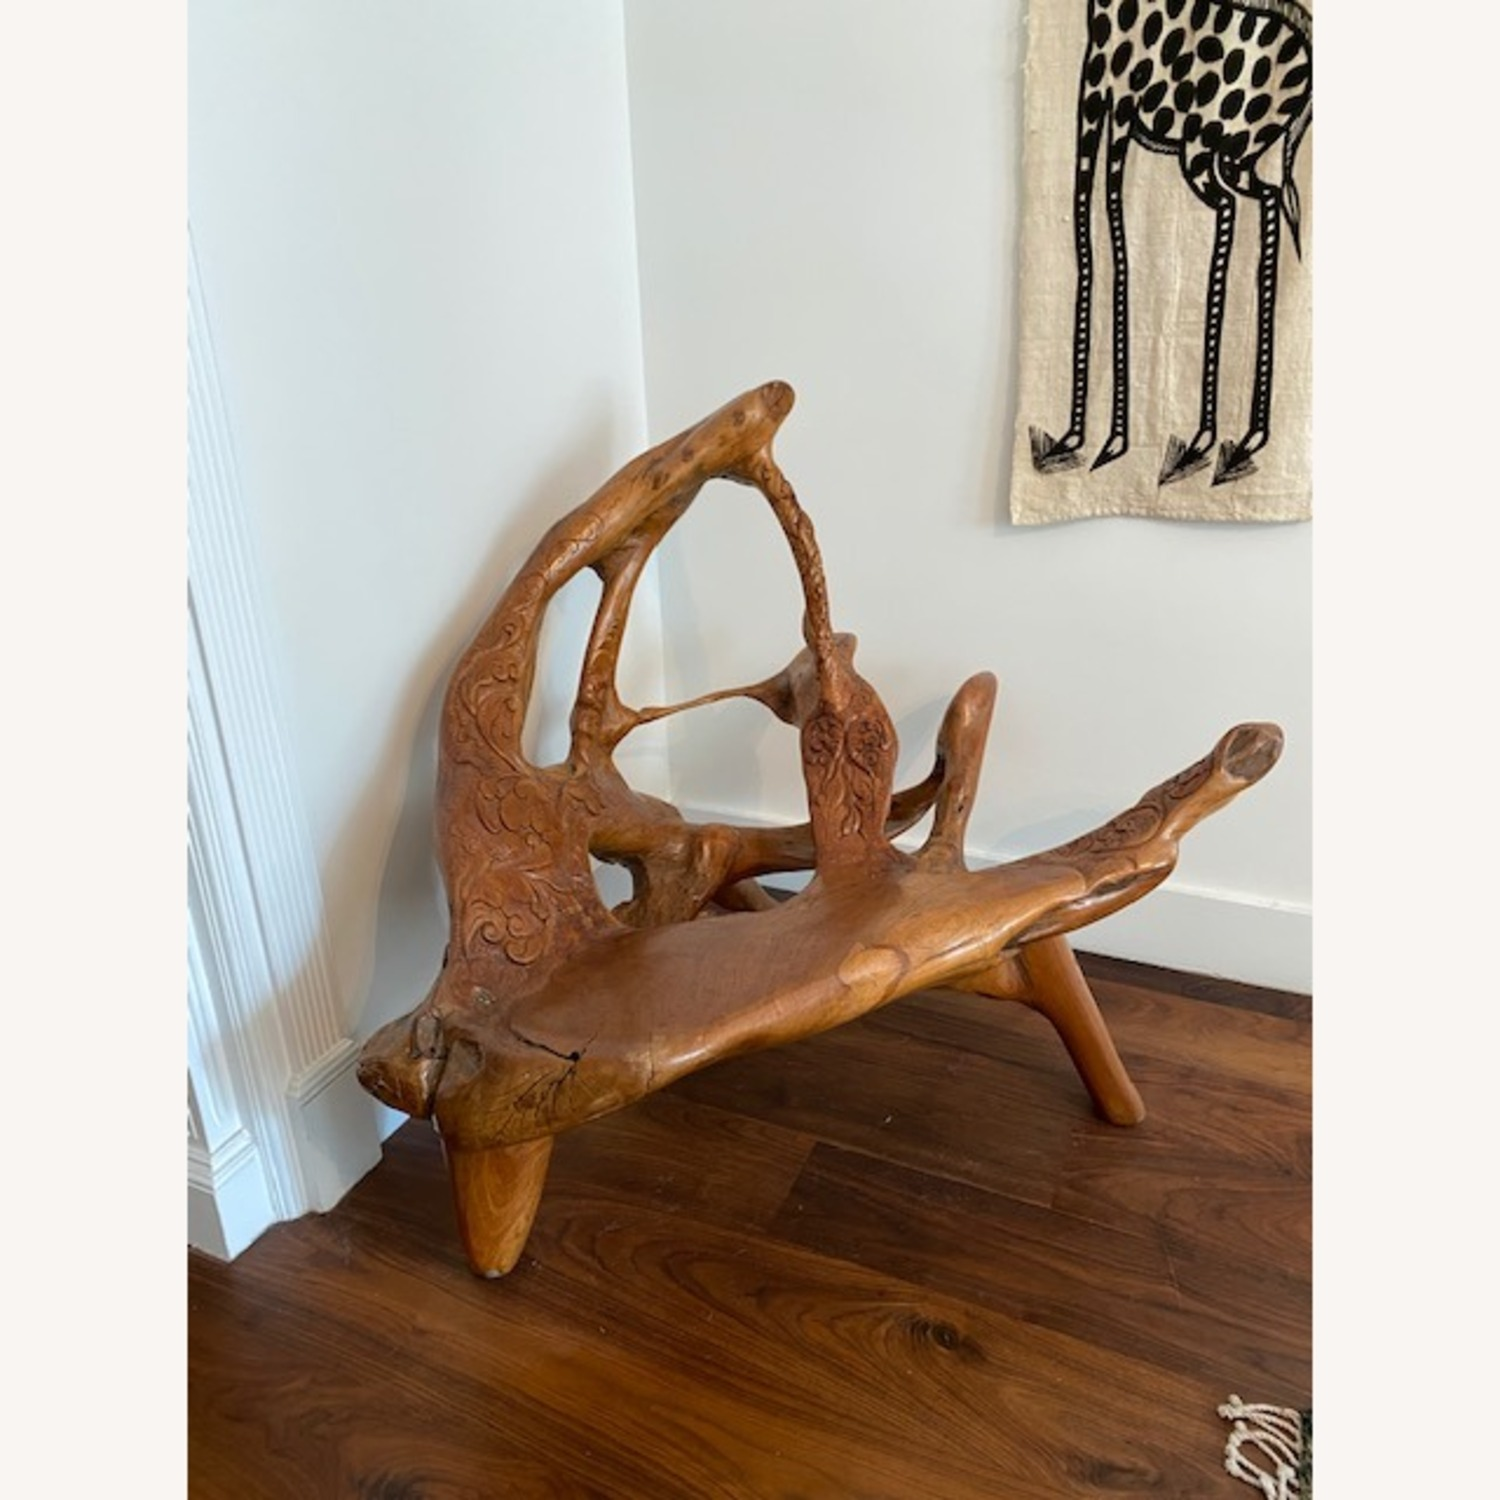 Organic Beautifully Carved Chair Sculpture - image-1